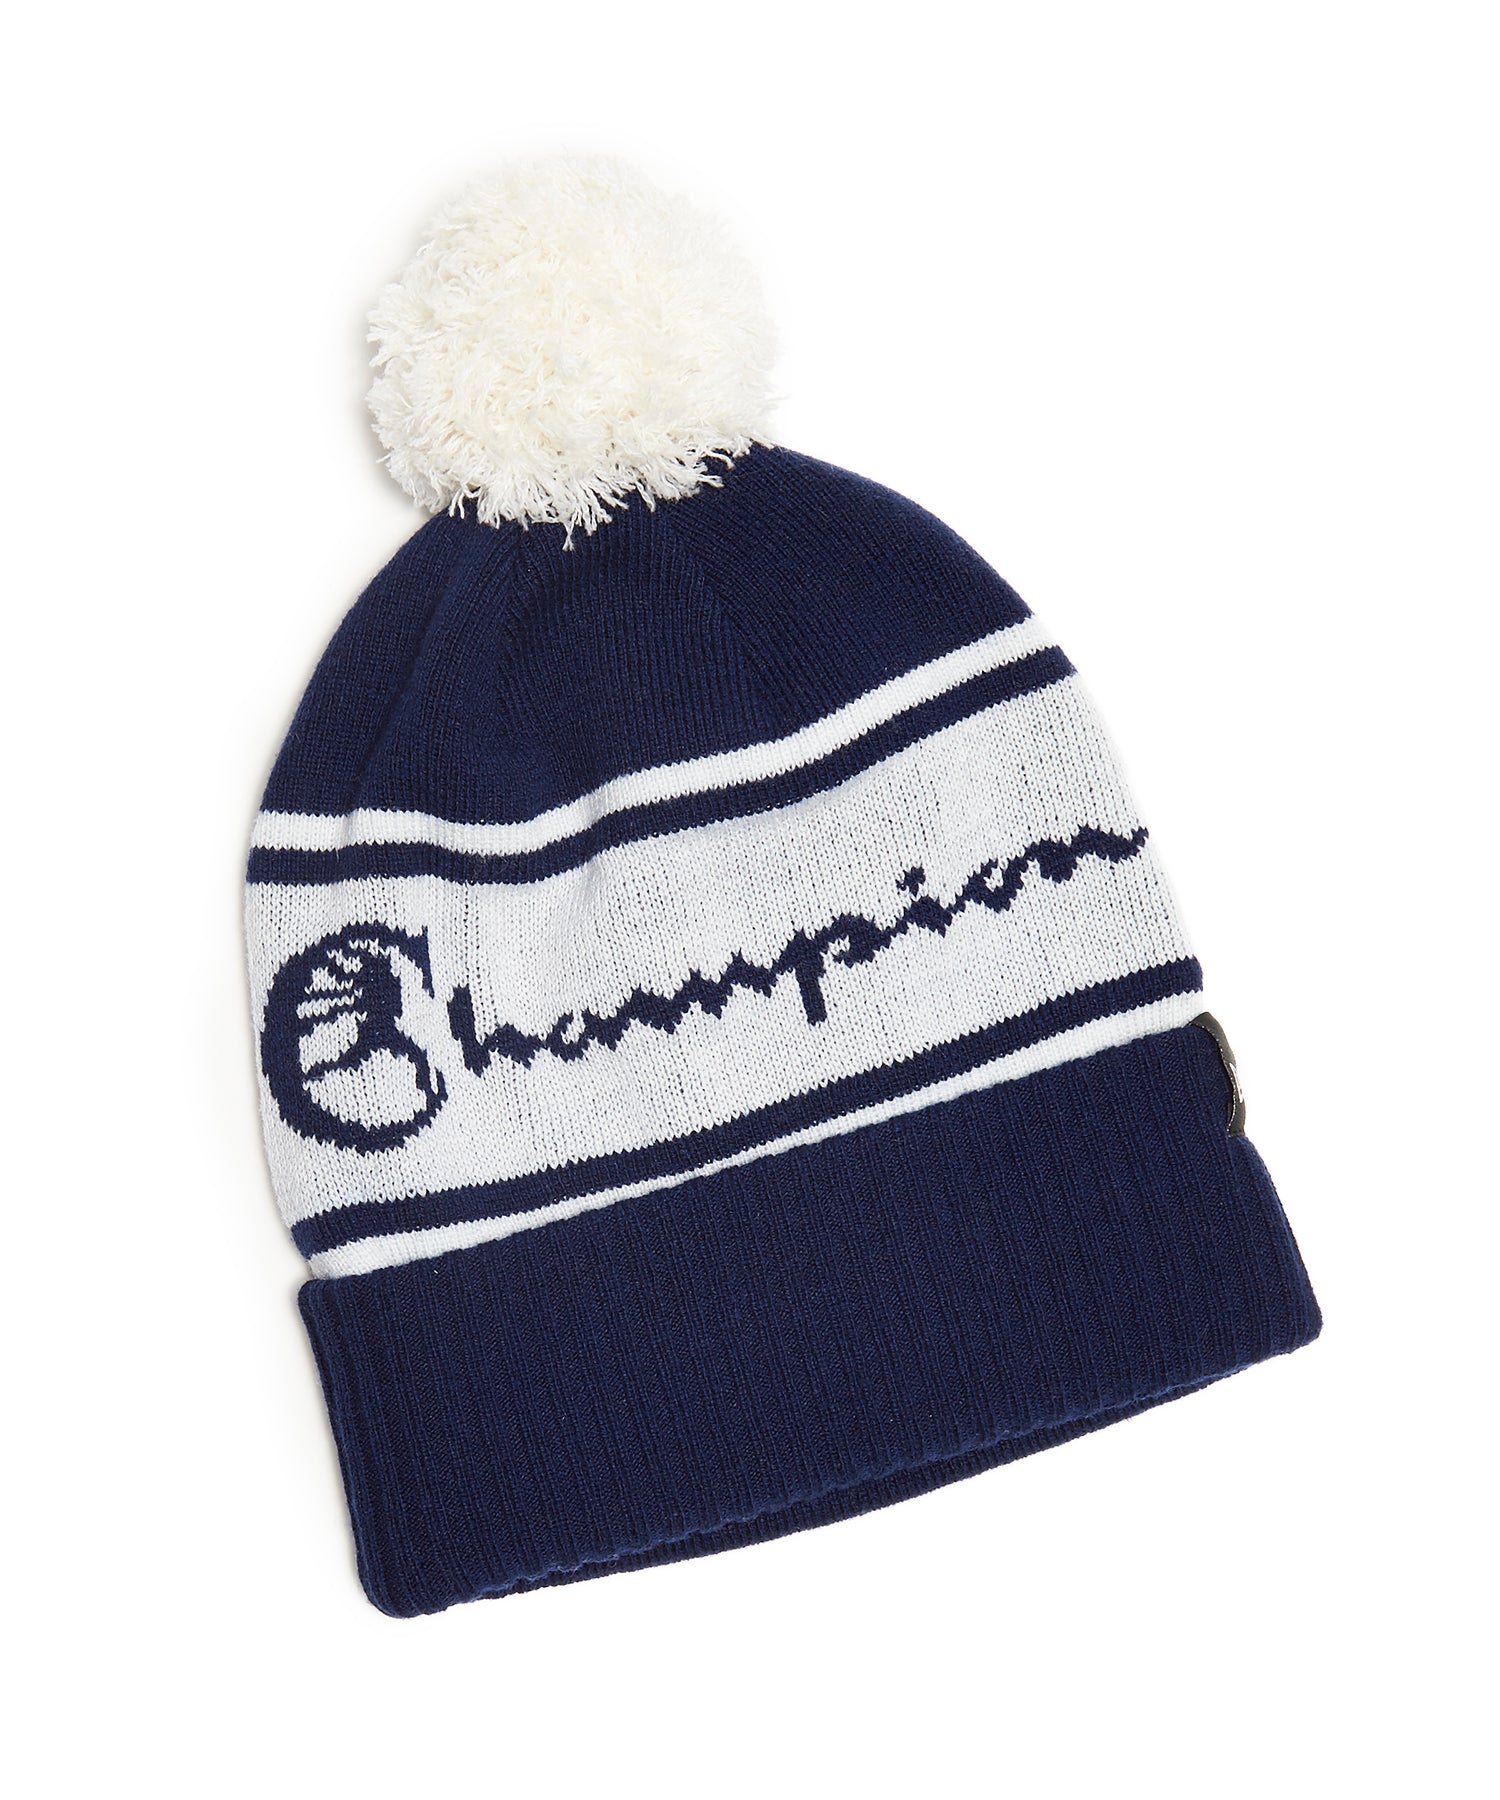 Champion + New Era Pom Pom Beanie in Navy